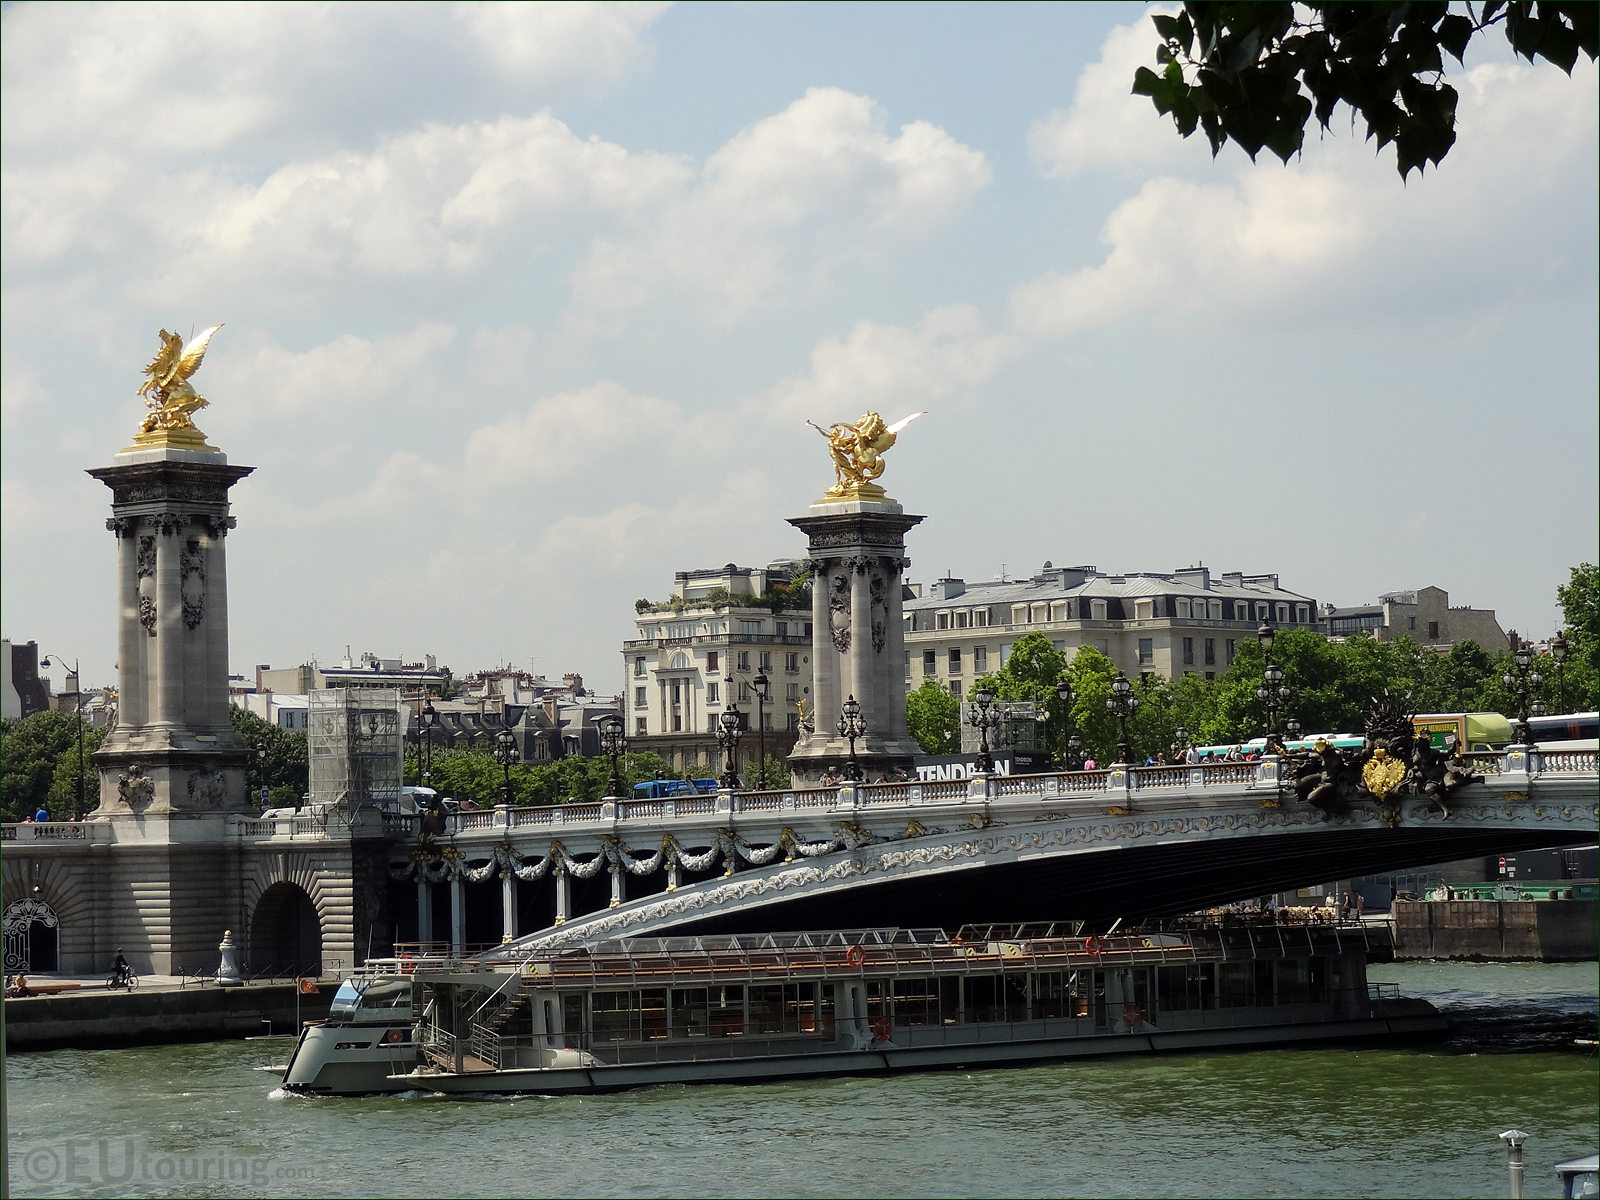 Photo Images Of Bateaux Parisiens Cruise Boats In Paris